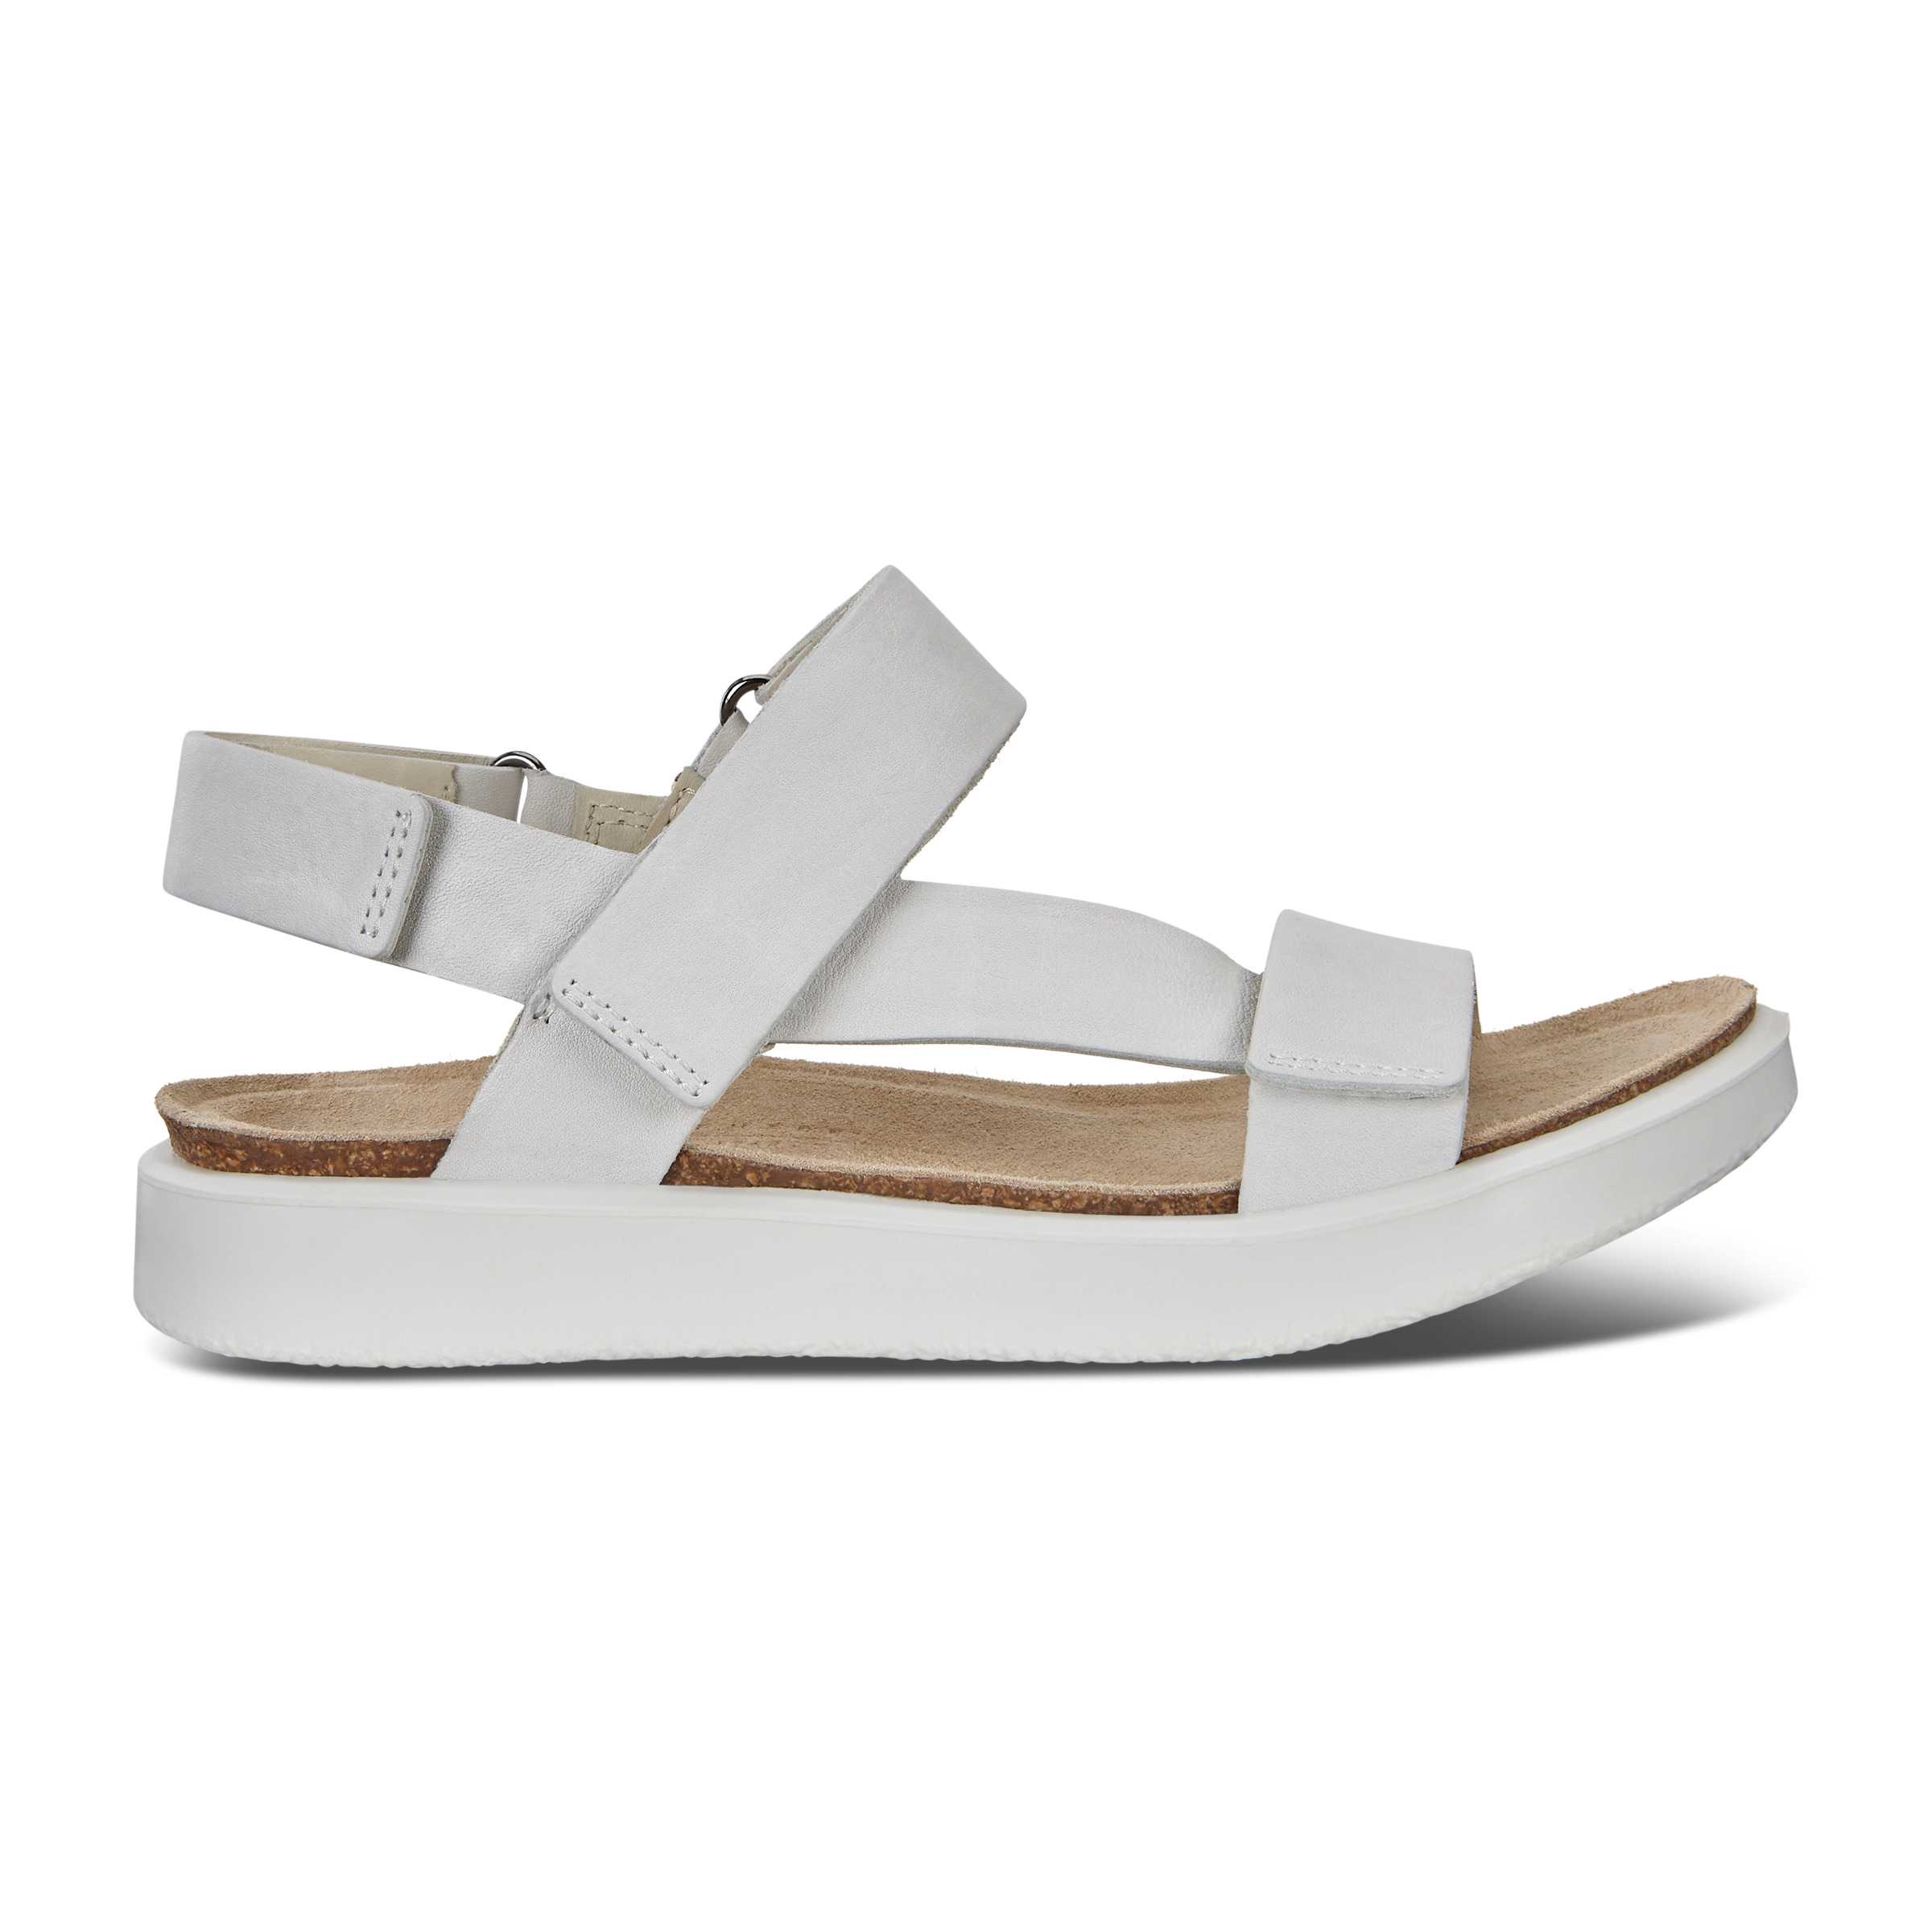 UPC 809704946528 product image for ECCO Corksphere Sandal W Shoe Size 8-8.5 White | upcitemdb.com